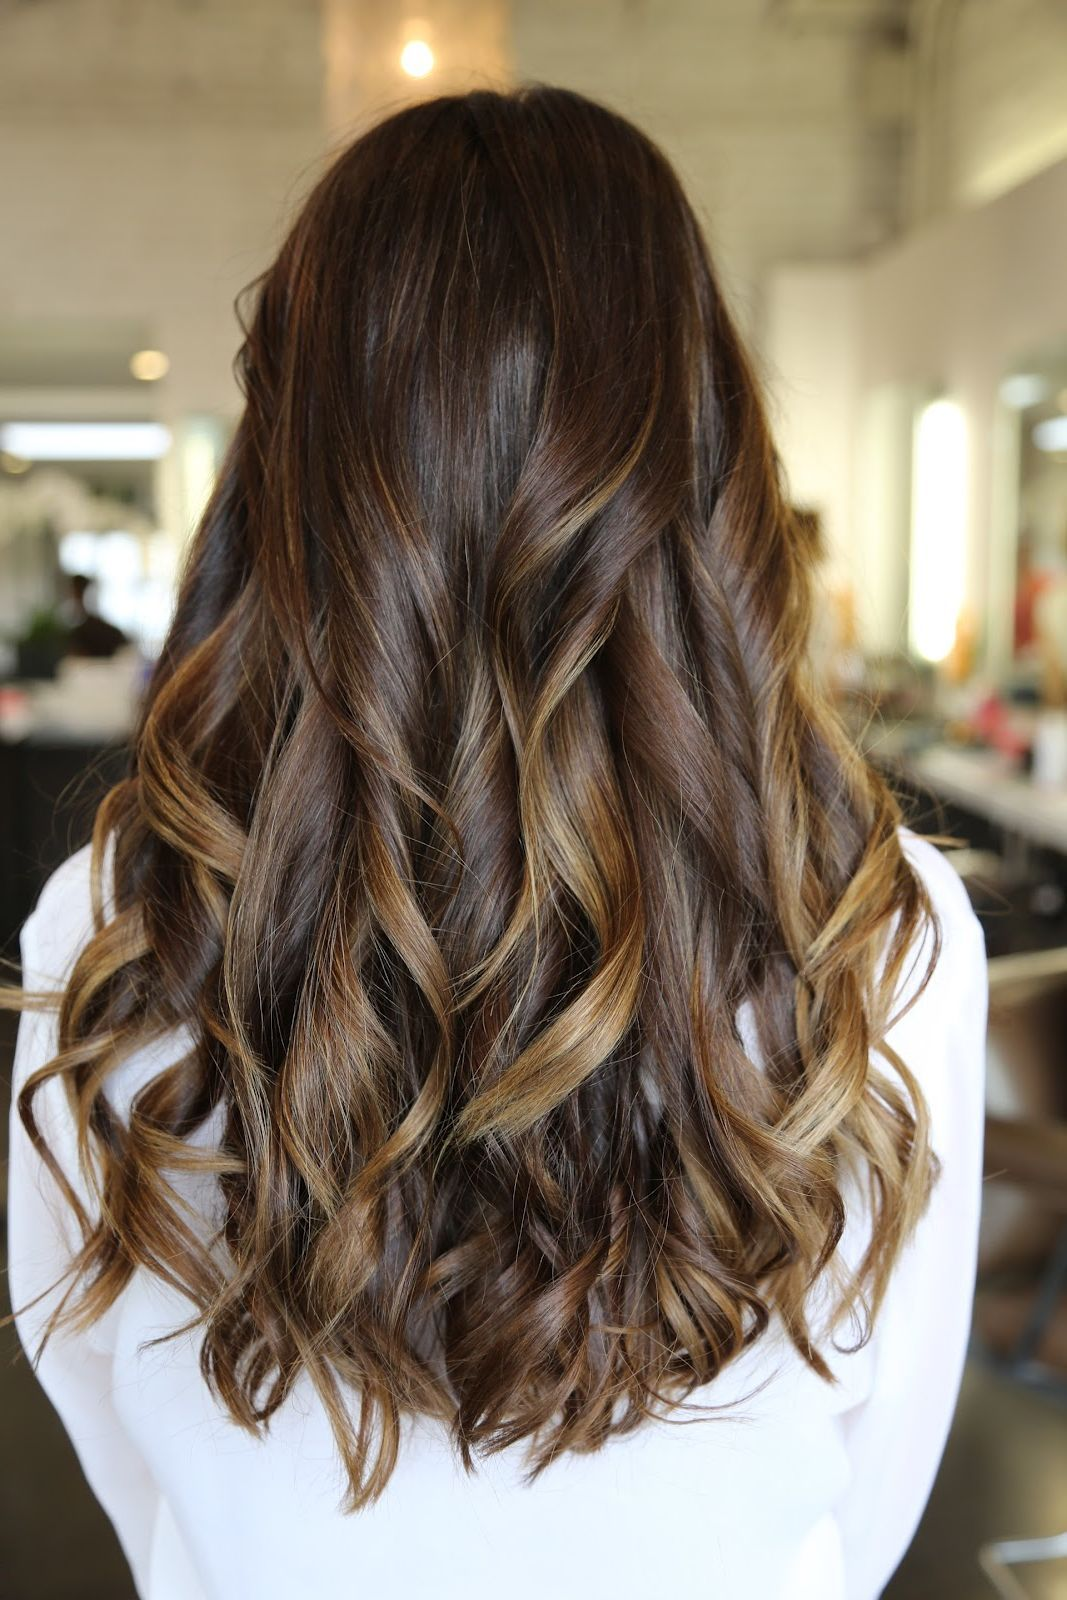 Pictures Of Caramel Blonde Highlights Hairstyles Long Layered Hair